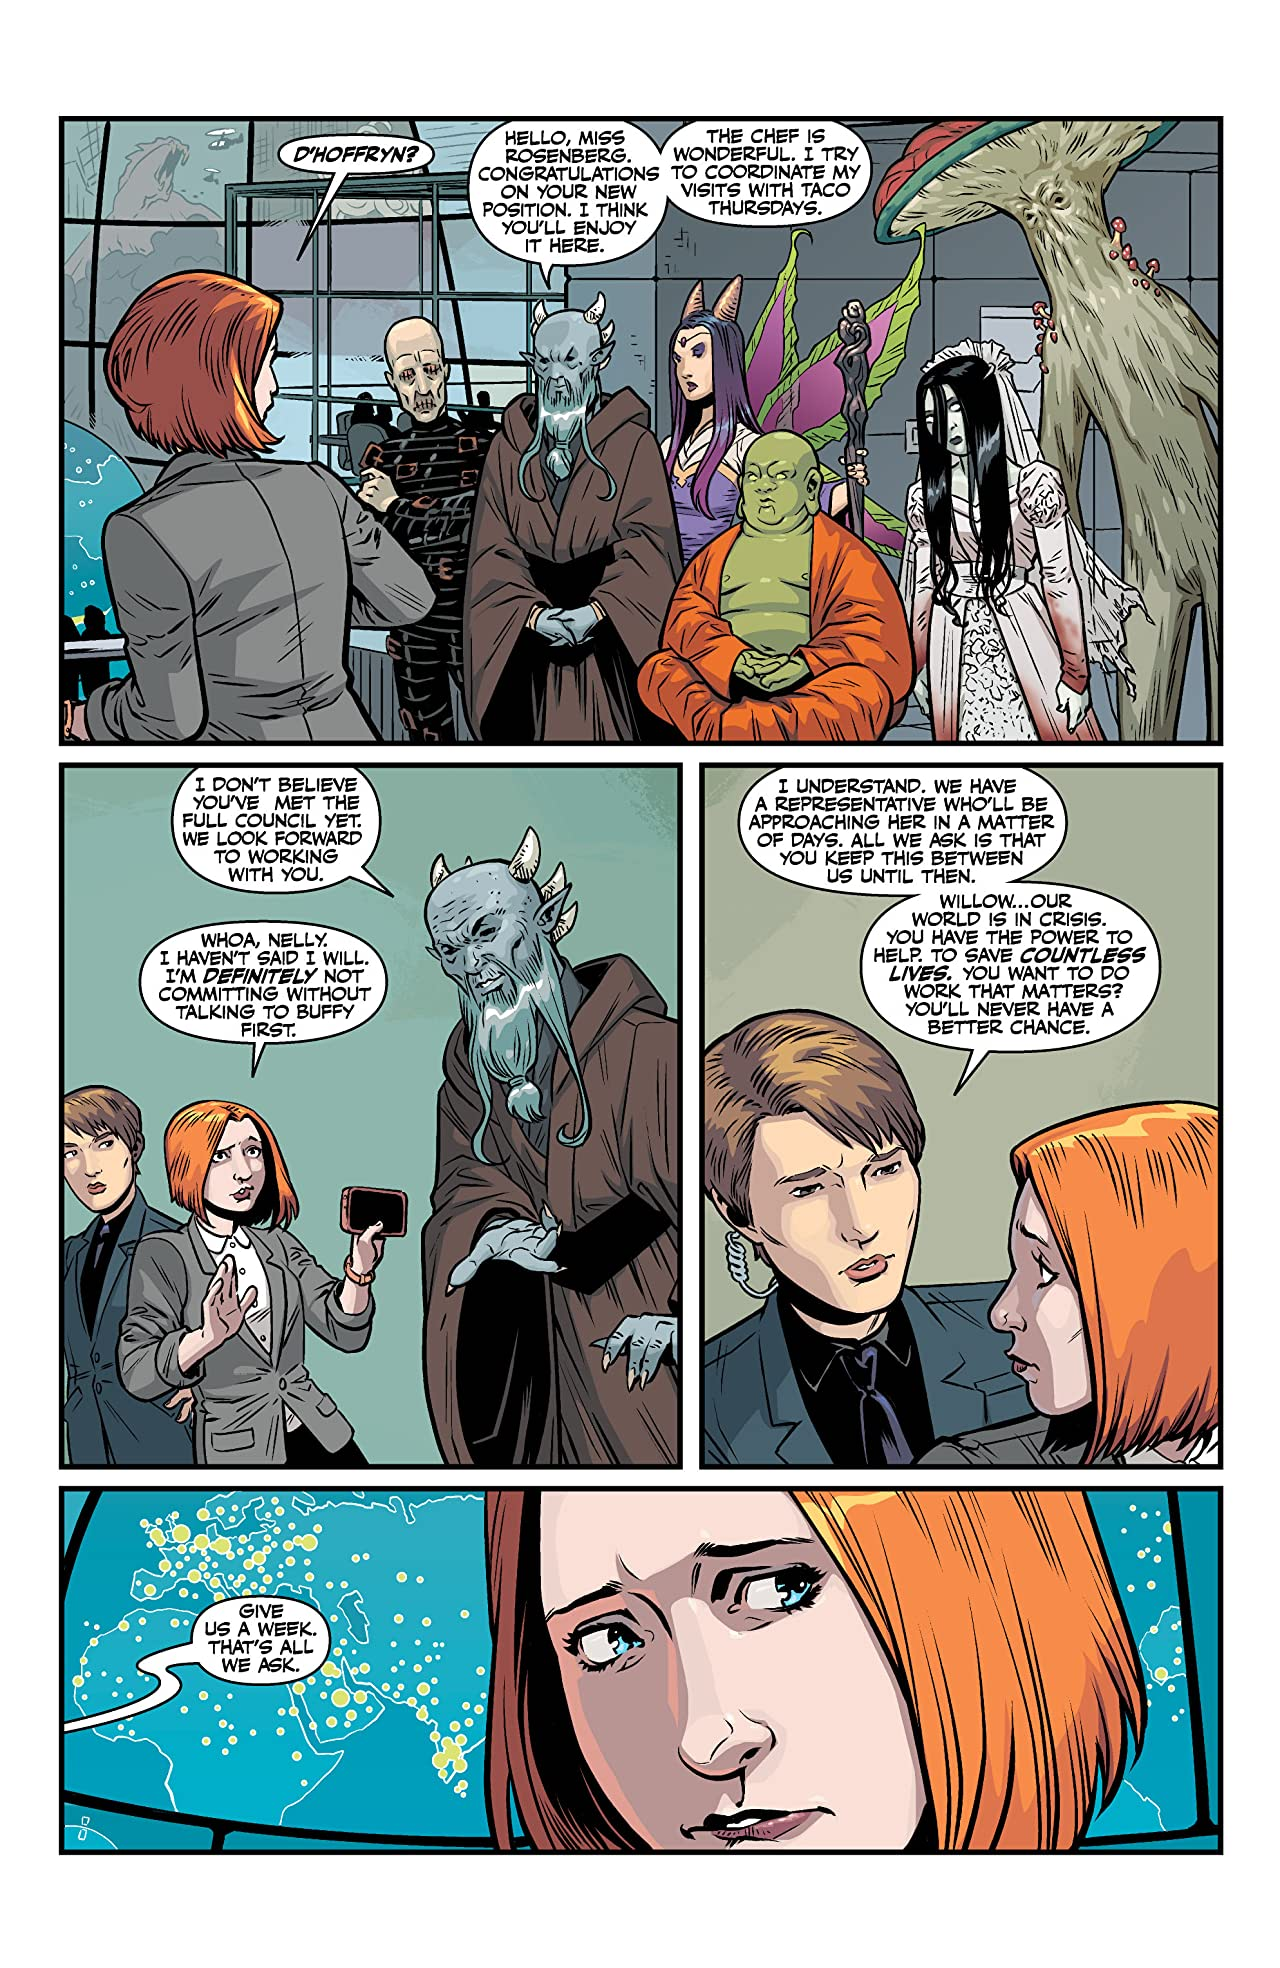 Buffy the Vampire Slayer: Season 10 #22